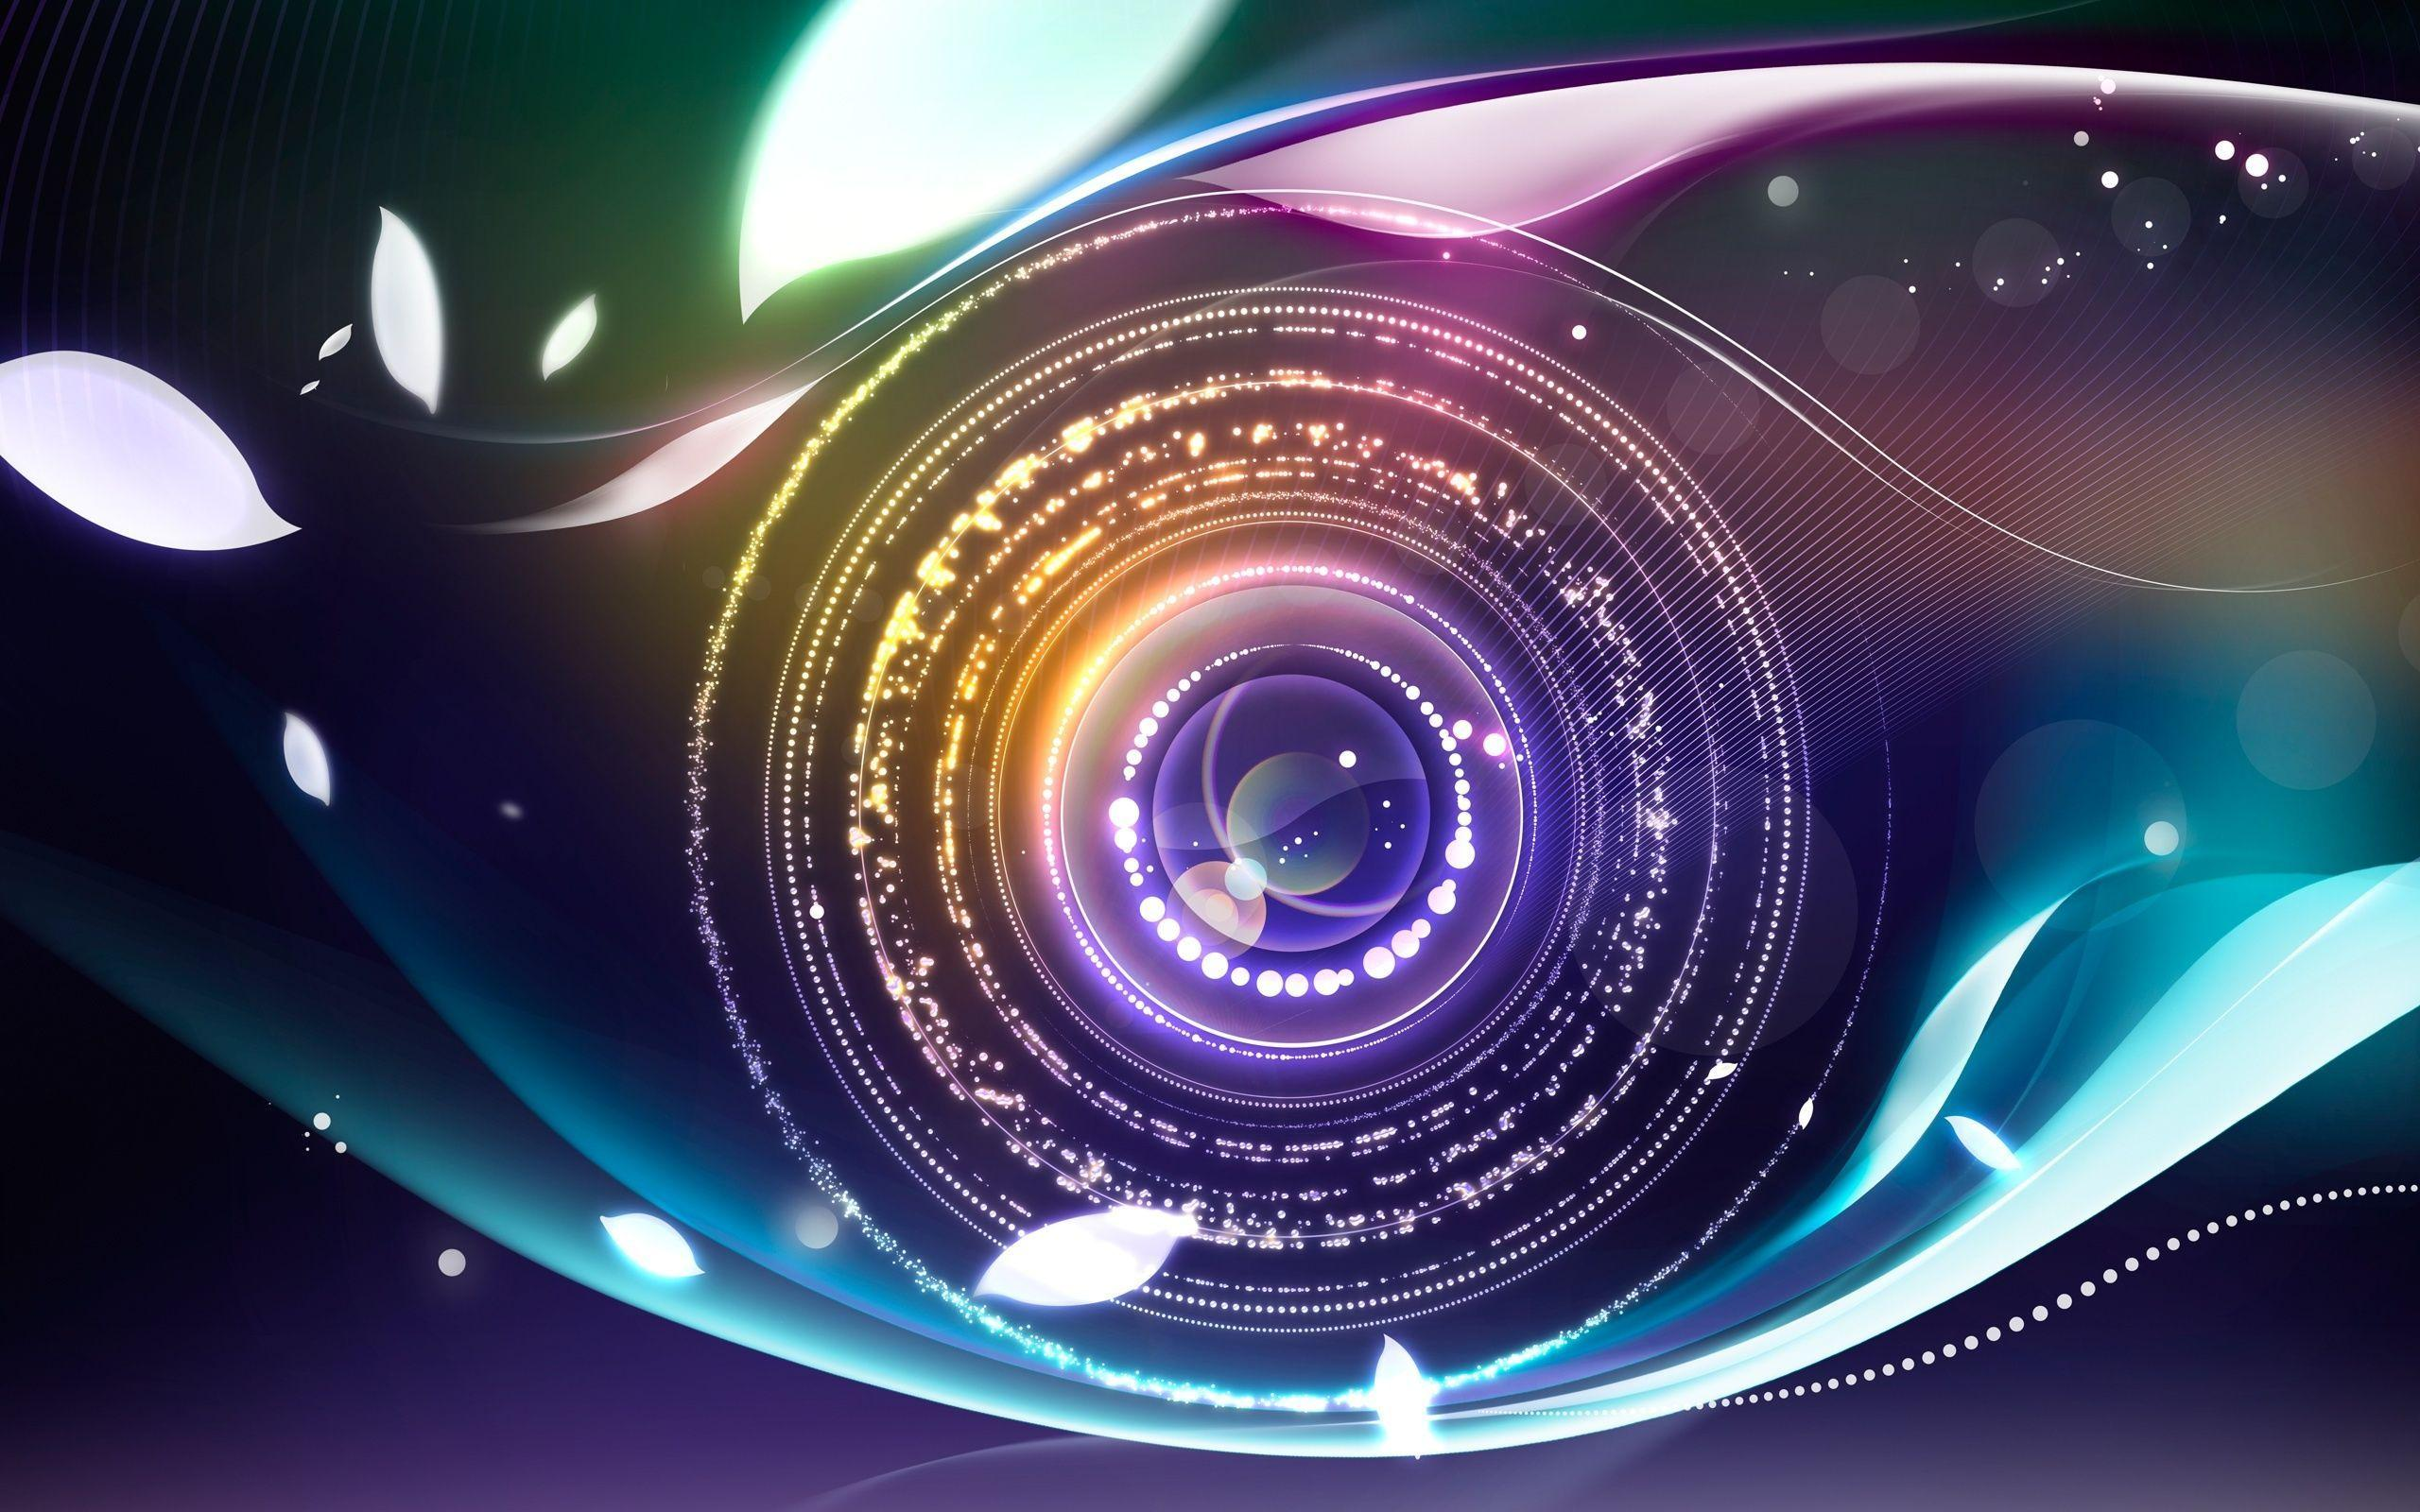 Camera Lens Wallpapers Android : Other Wallpaper - Arunnath.com